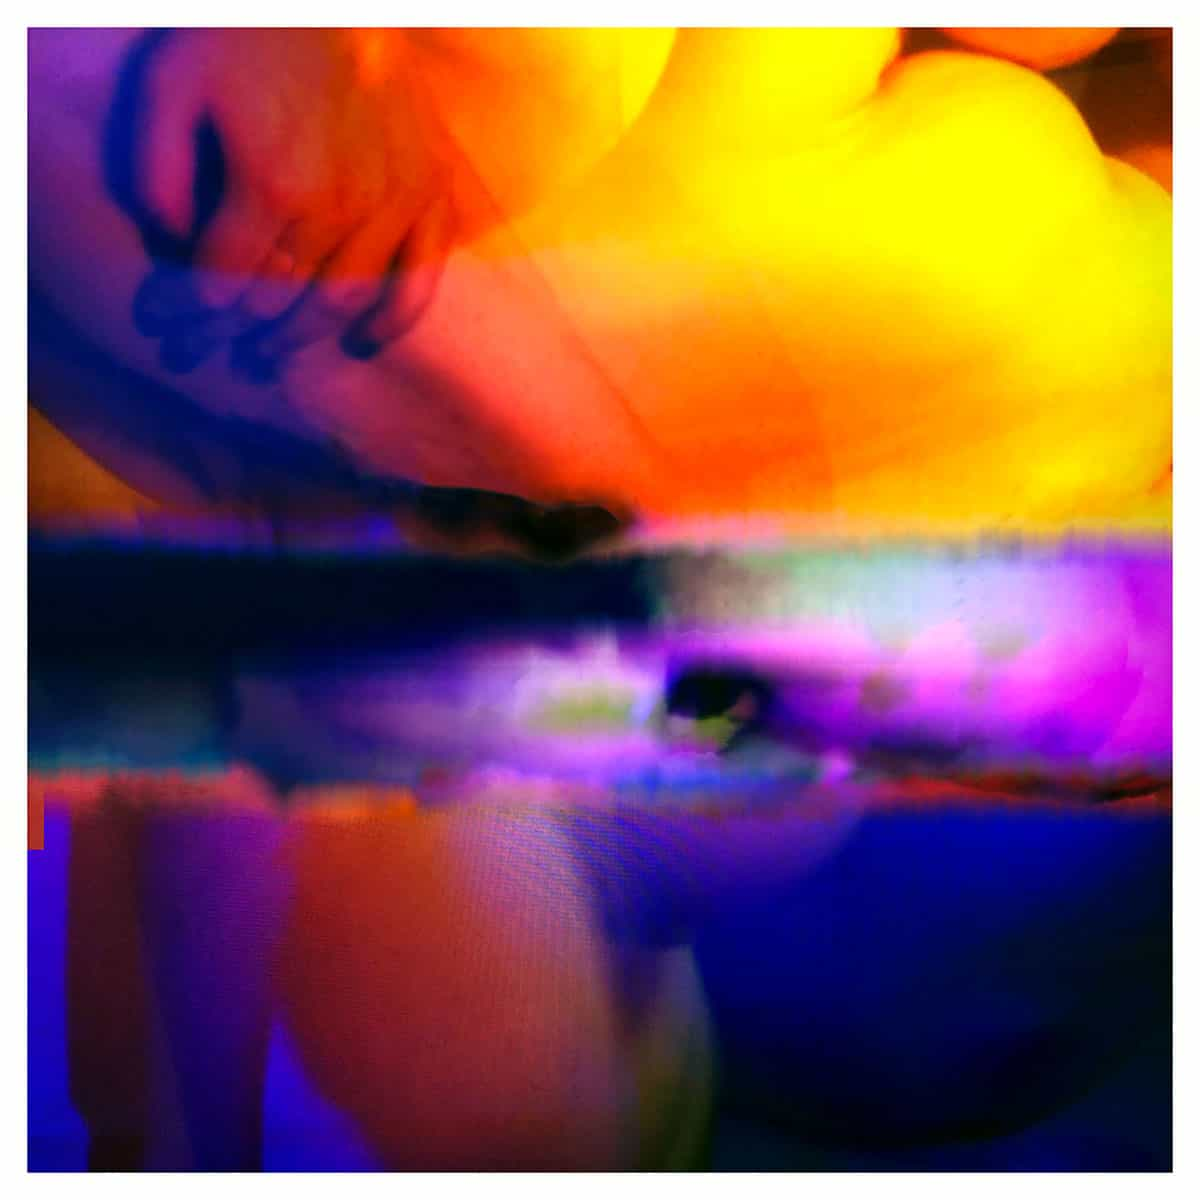 colorful abstract photograph with fragments of human body including a hand -in reds, and purples and blues and yellows